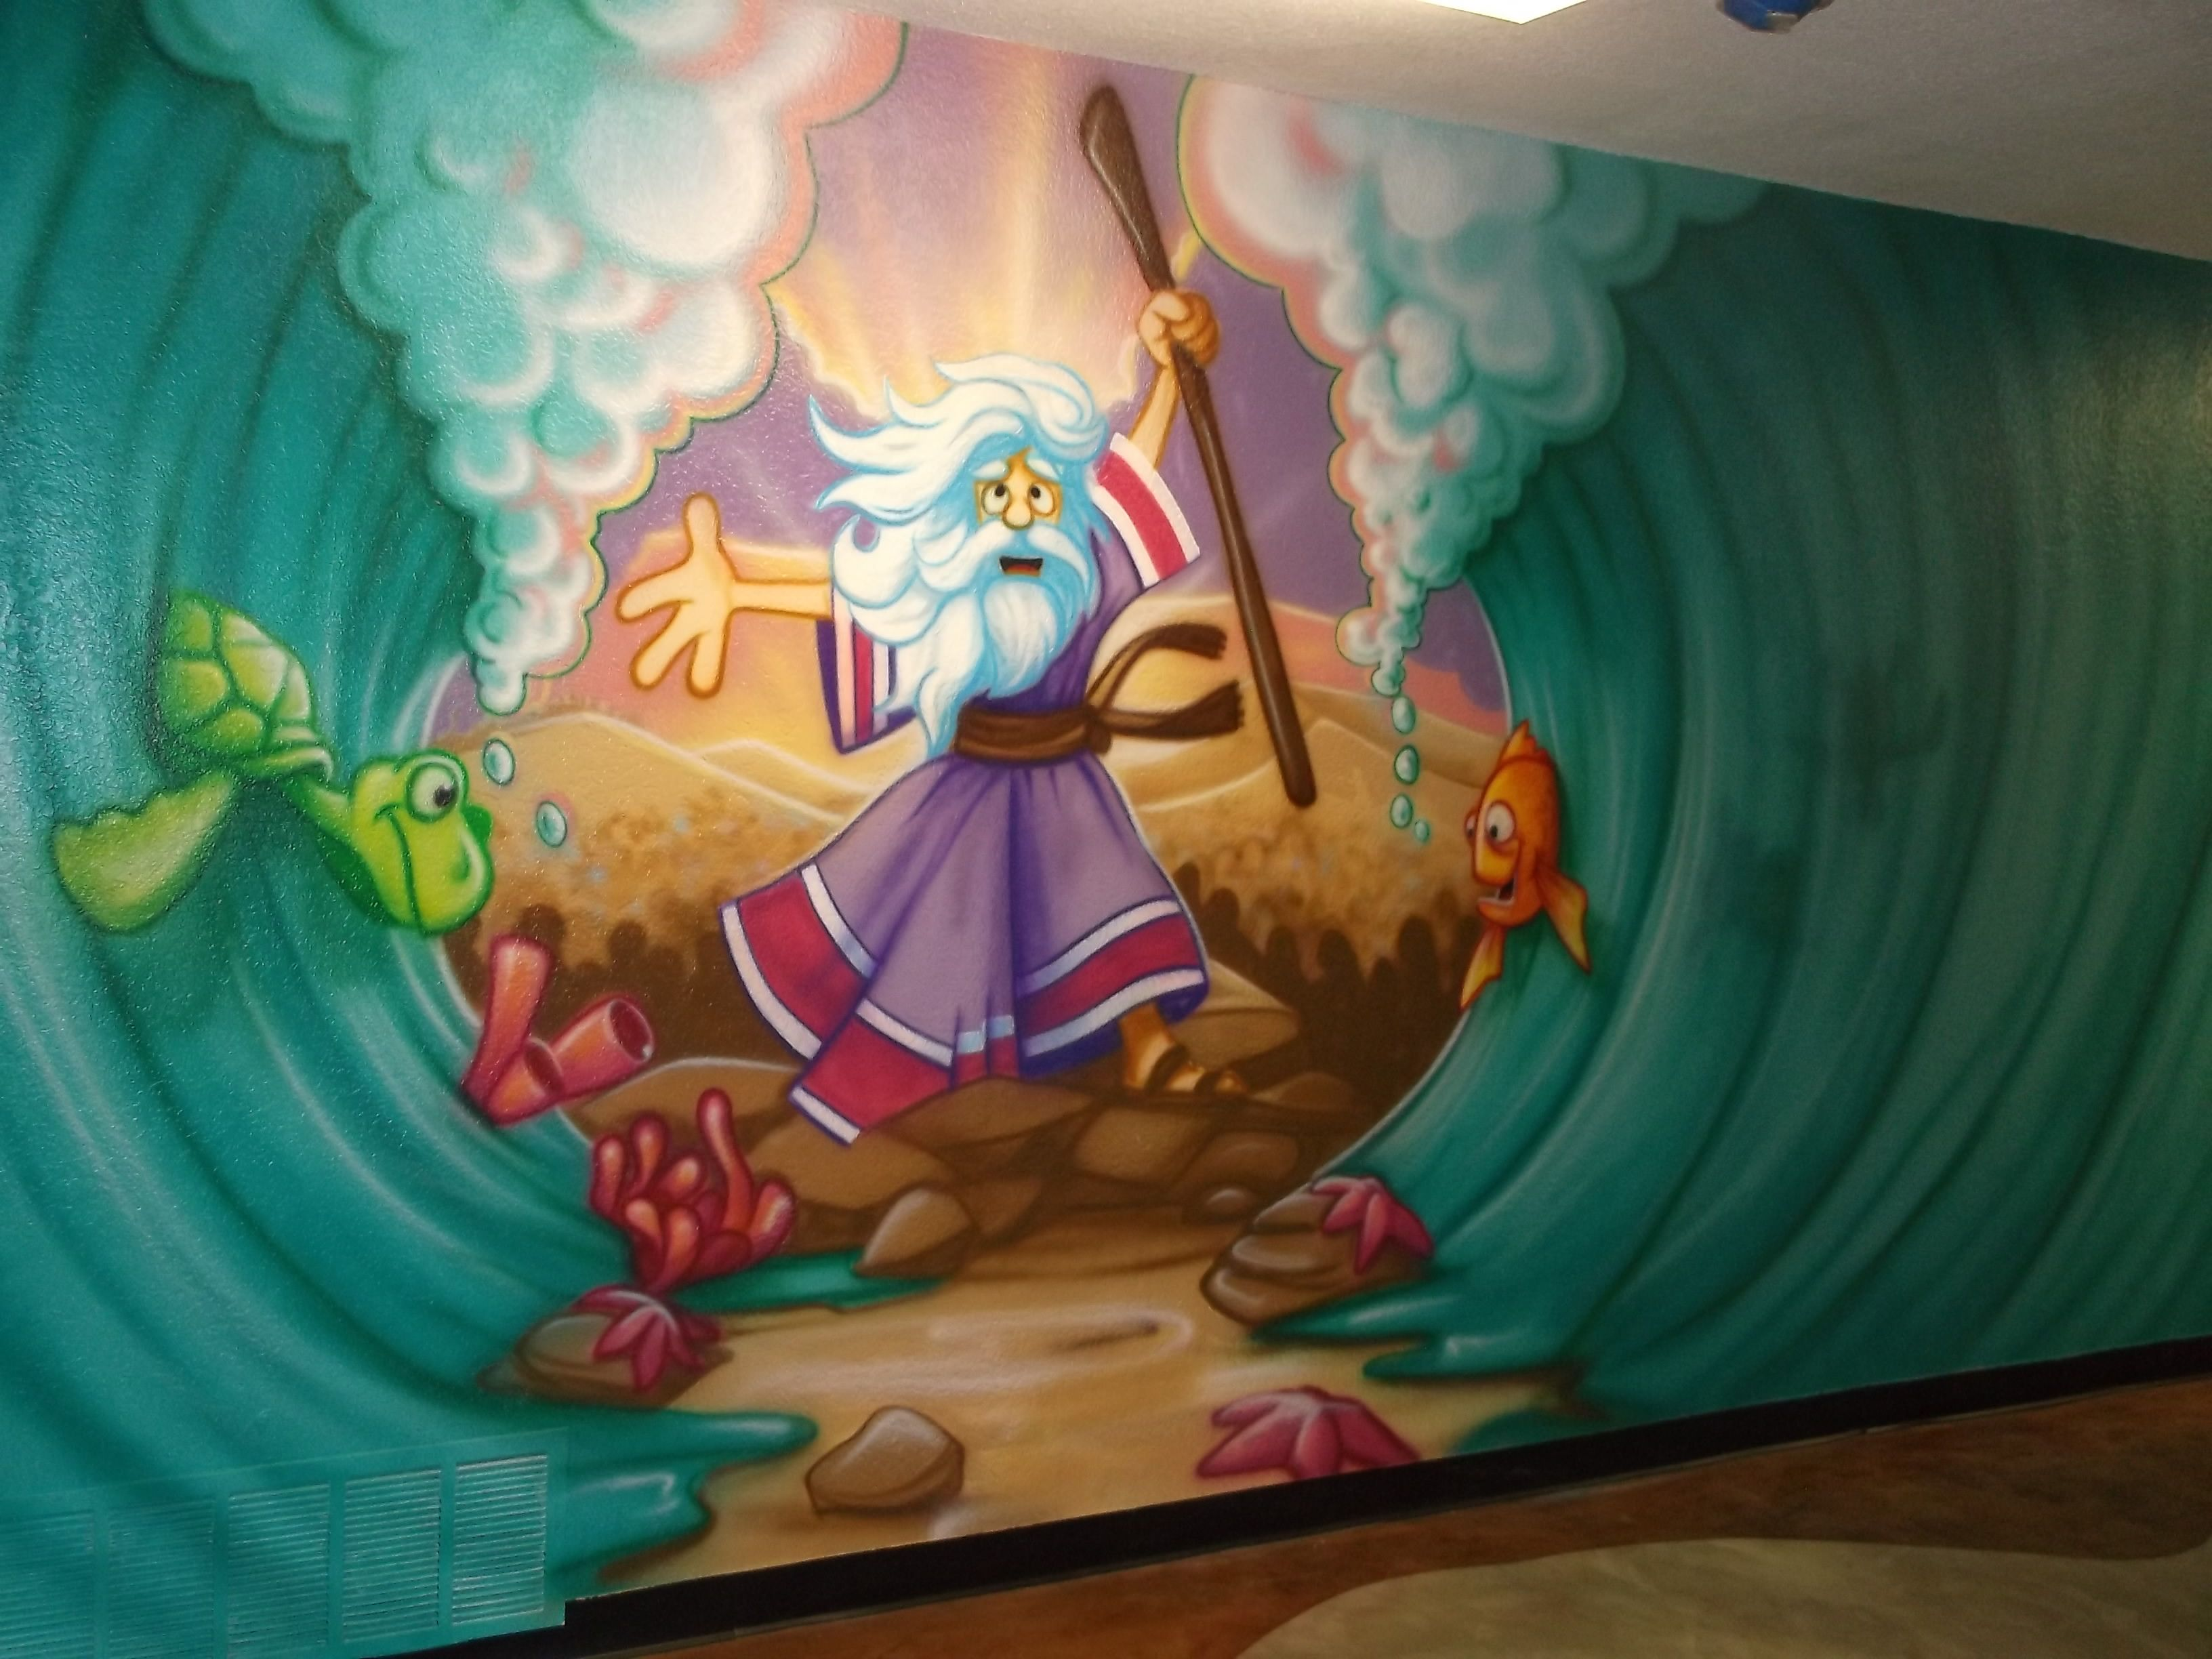 Wall murals bible stories google search fbc children for Airbrushed mural